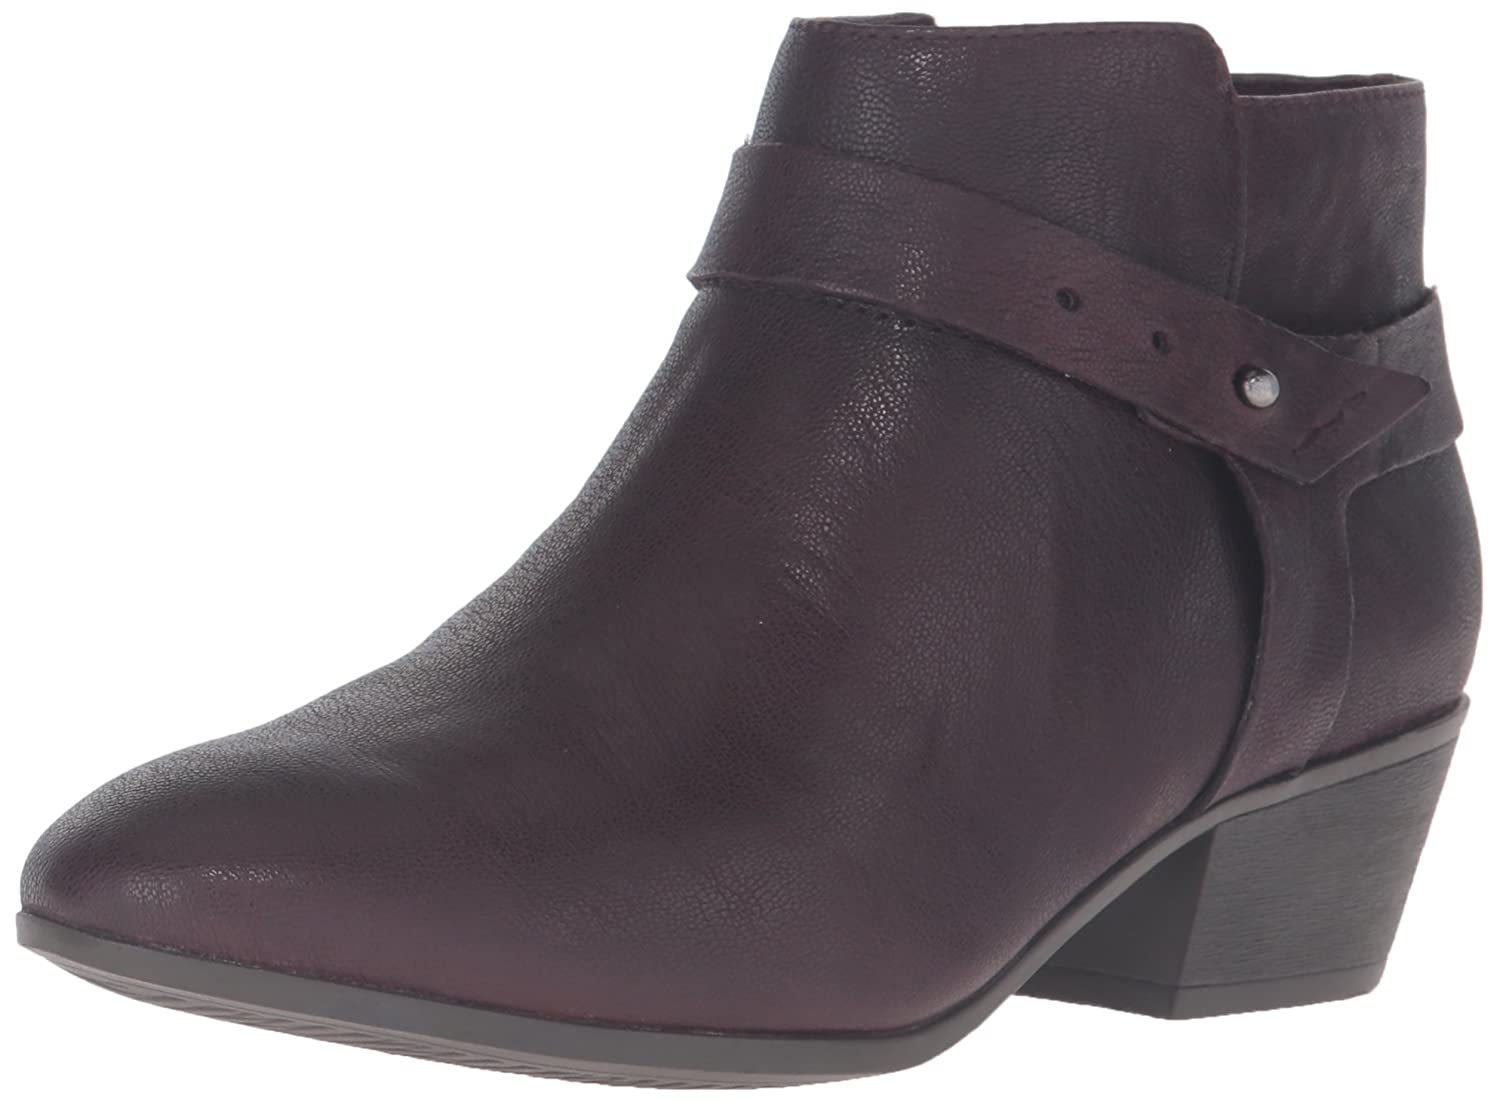 CLARKS Women's Boylan Dawn Ankle Bootie B019JT31QM 7 B(M) US|Aubergine Leather